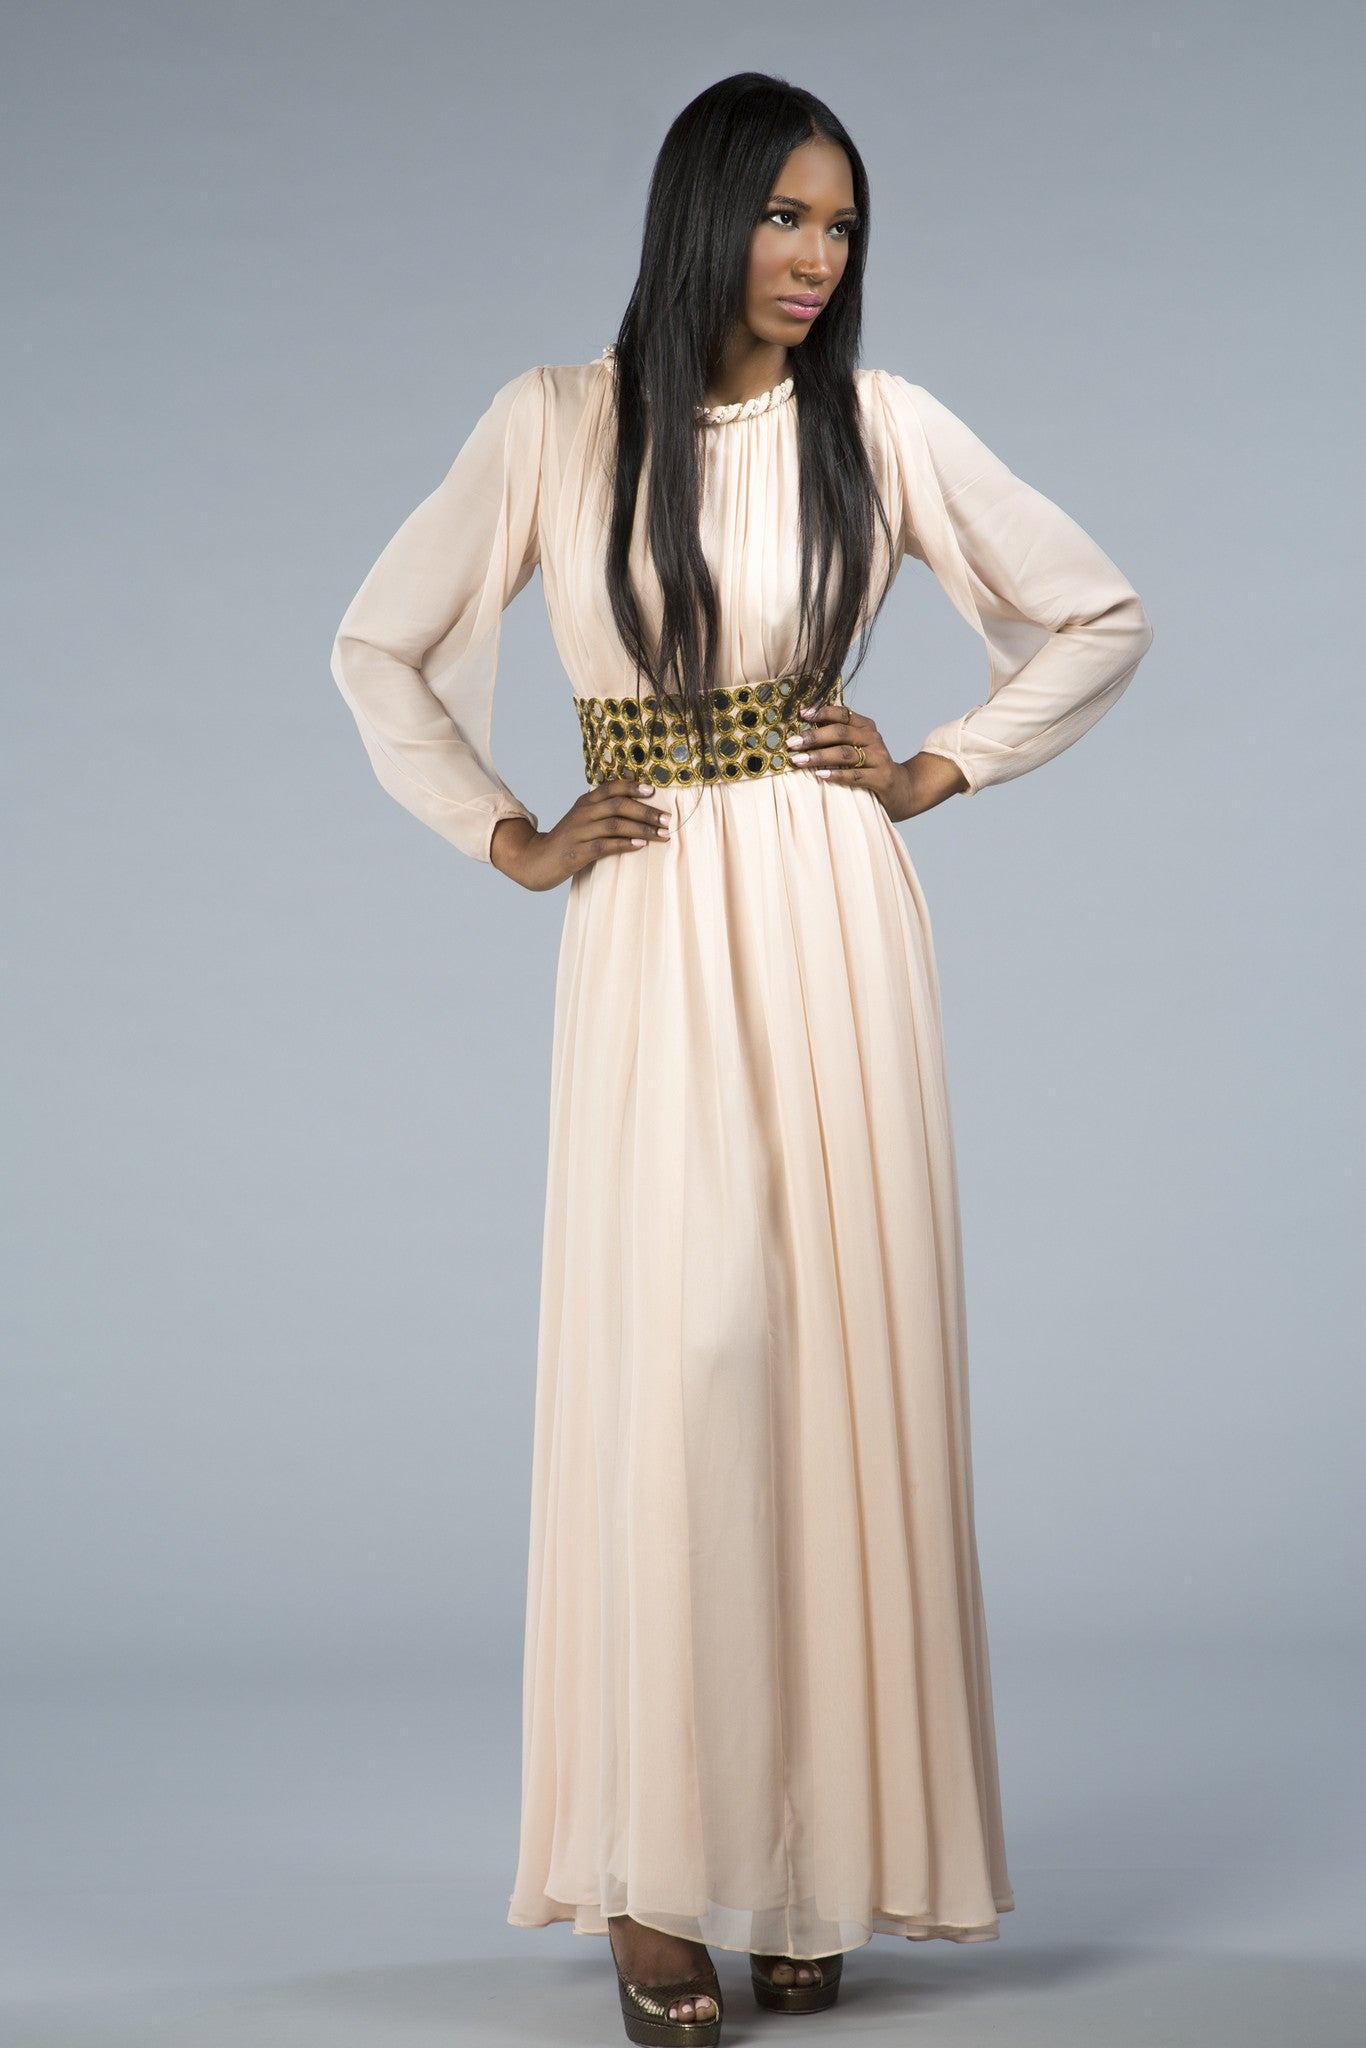 The Noor gown